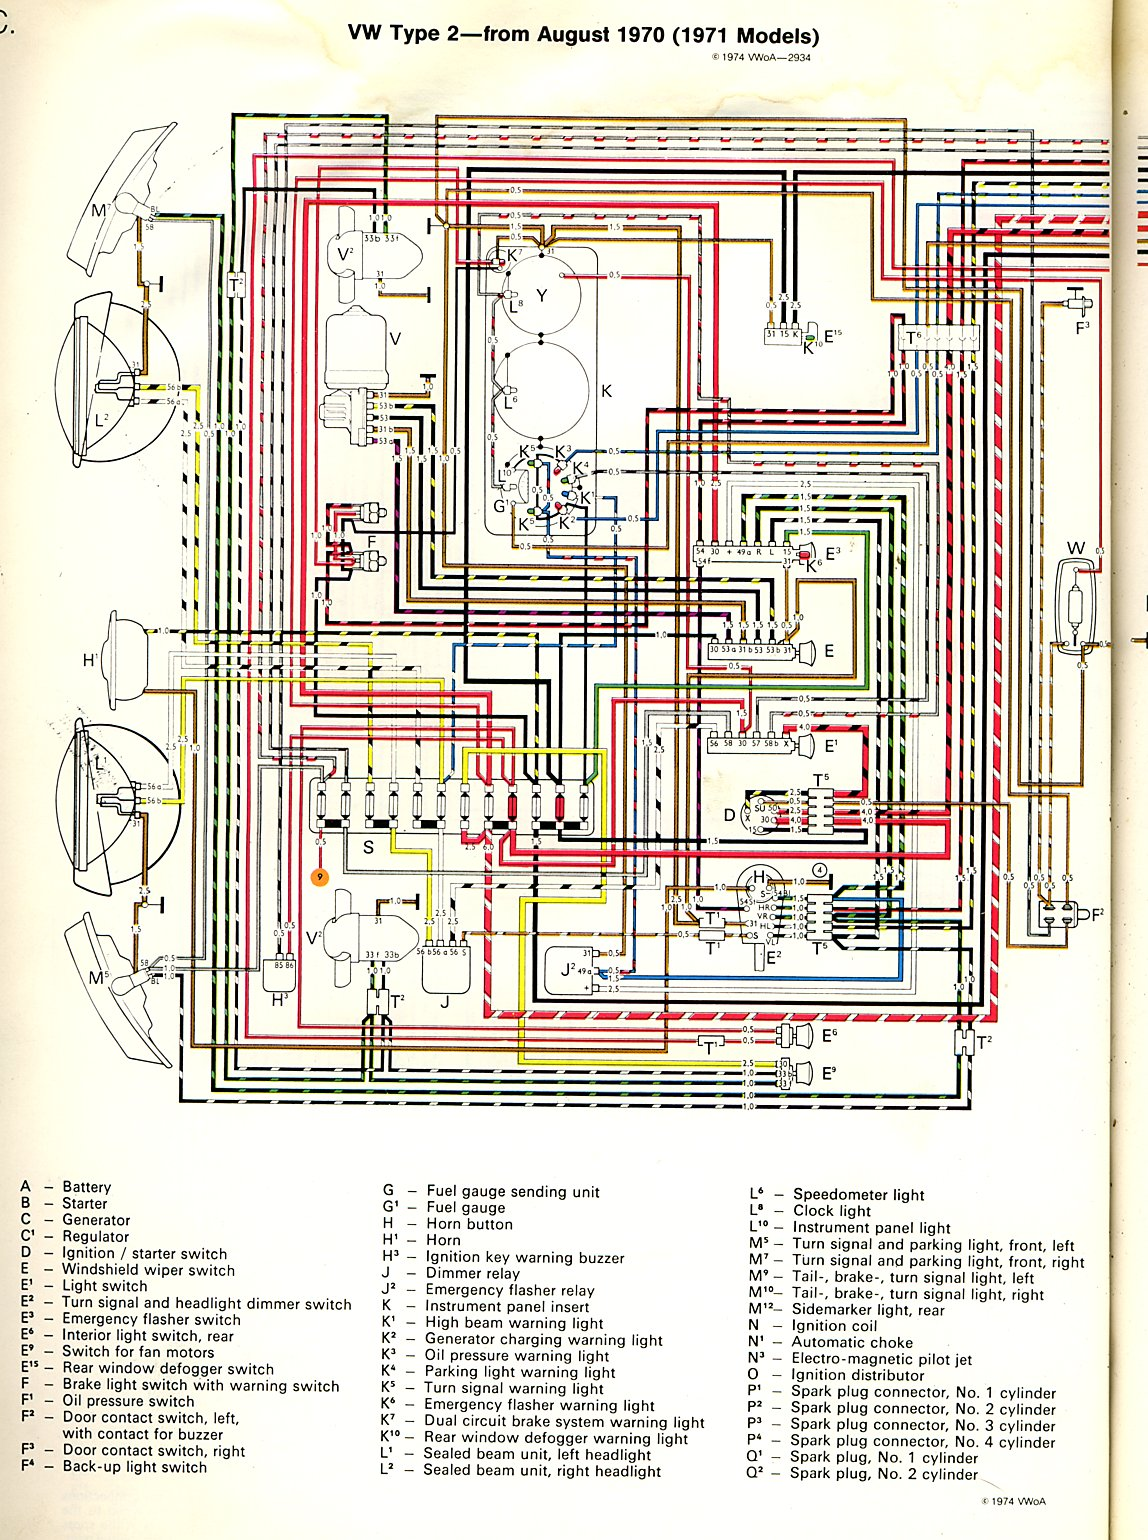 baybus_71a 71 vw bus wiring diagram 1970 vw bus fuse box diagram \u2022 wiring Atlas Connector Wiring at reclaimingppi.co